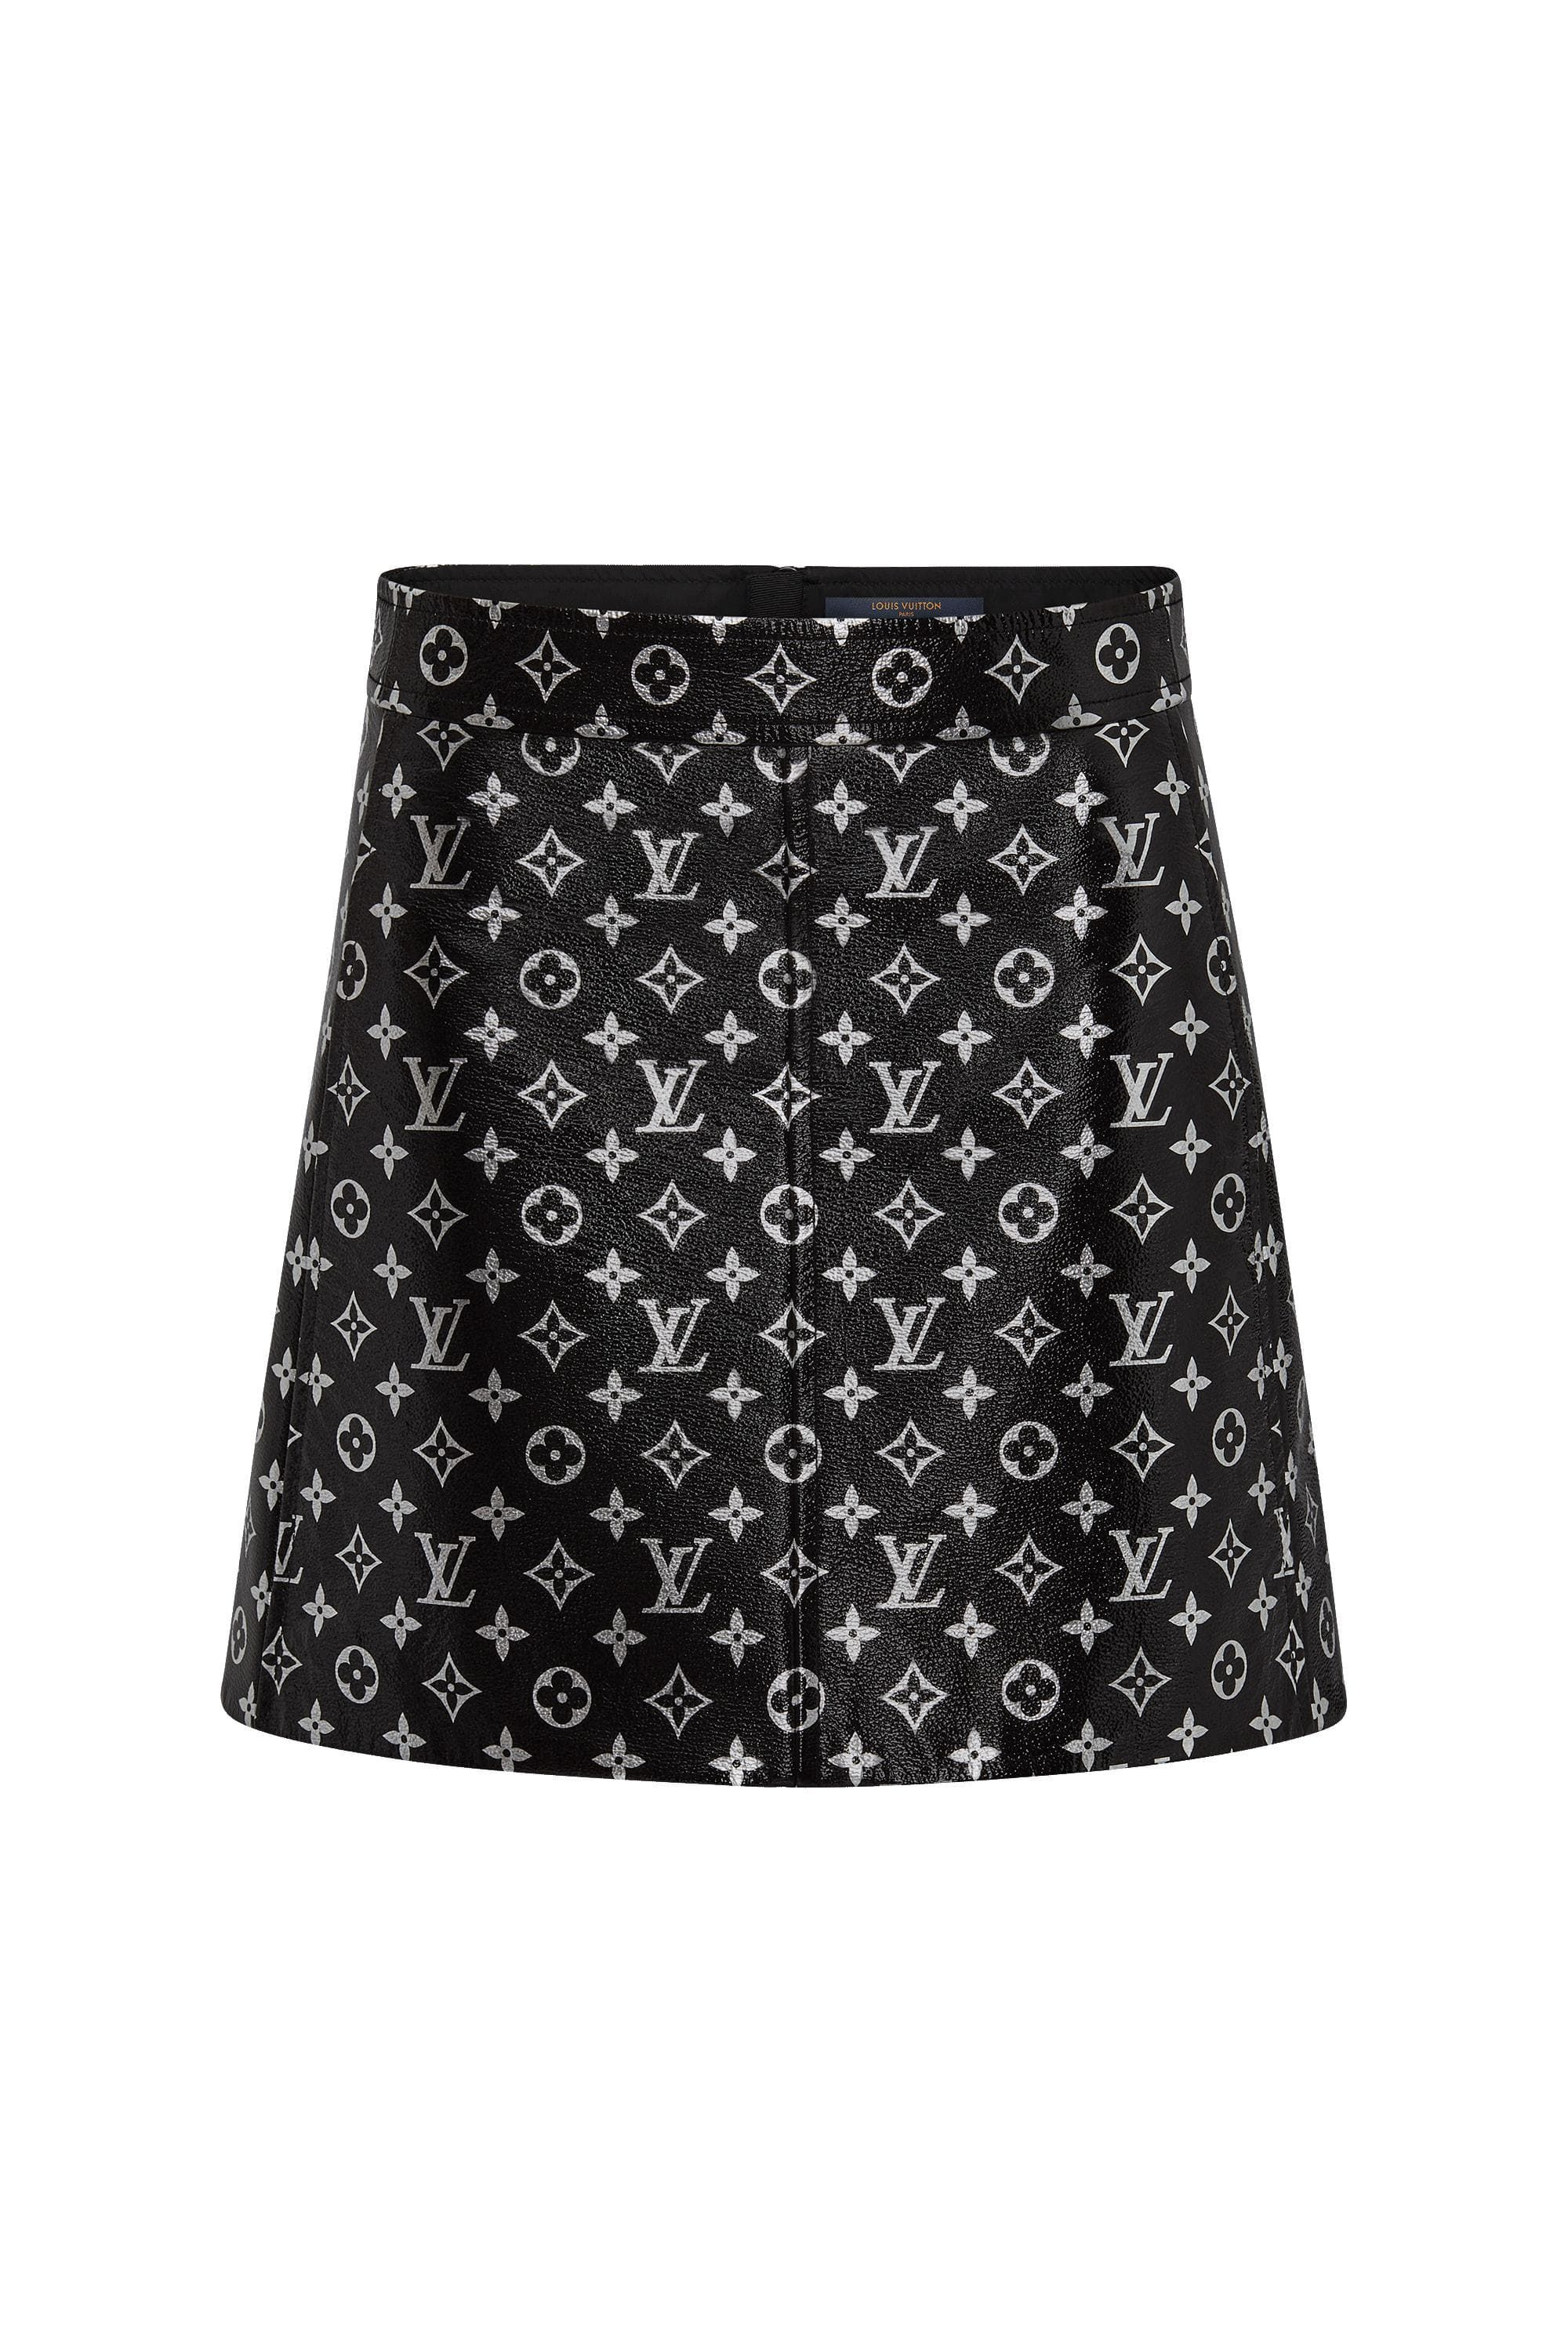 2f5bed8627 Monogram Printed Leather Mini Skirt - Ready-to-Wear   LOUIS VUITTON ...